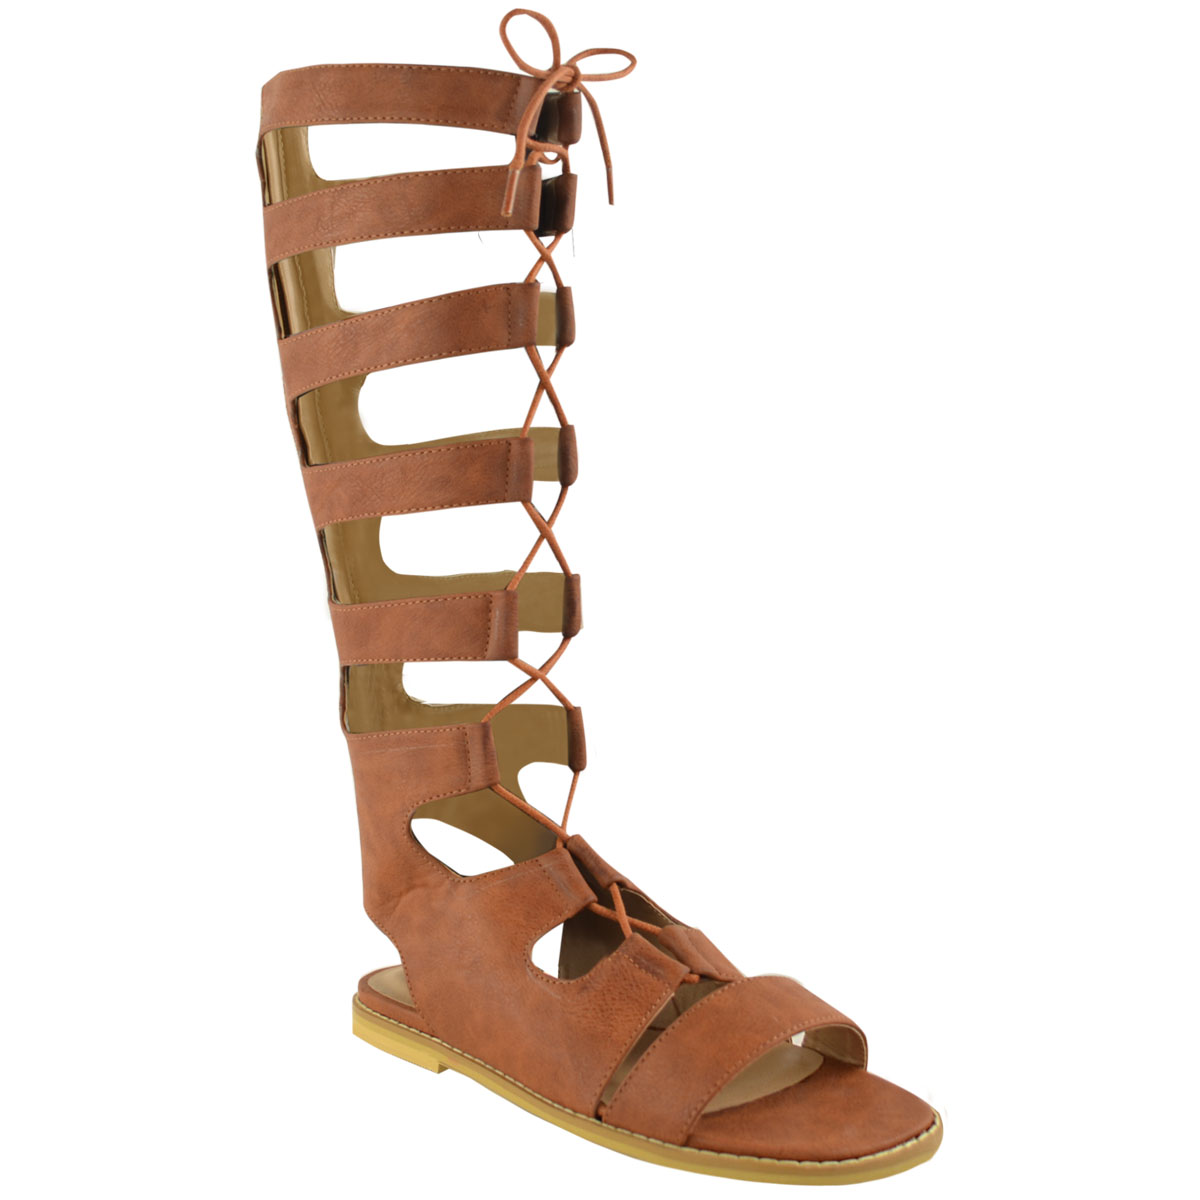 345d9d714f3b WOMENS LADIES KNEE HIGH GLADIATOR LACE UP CUT OUT FLAT SANDALS ...